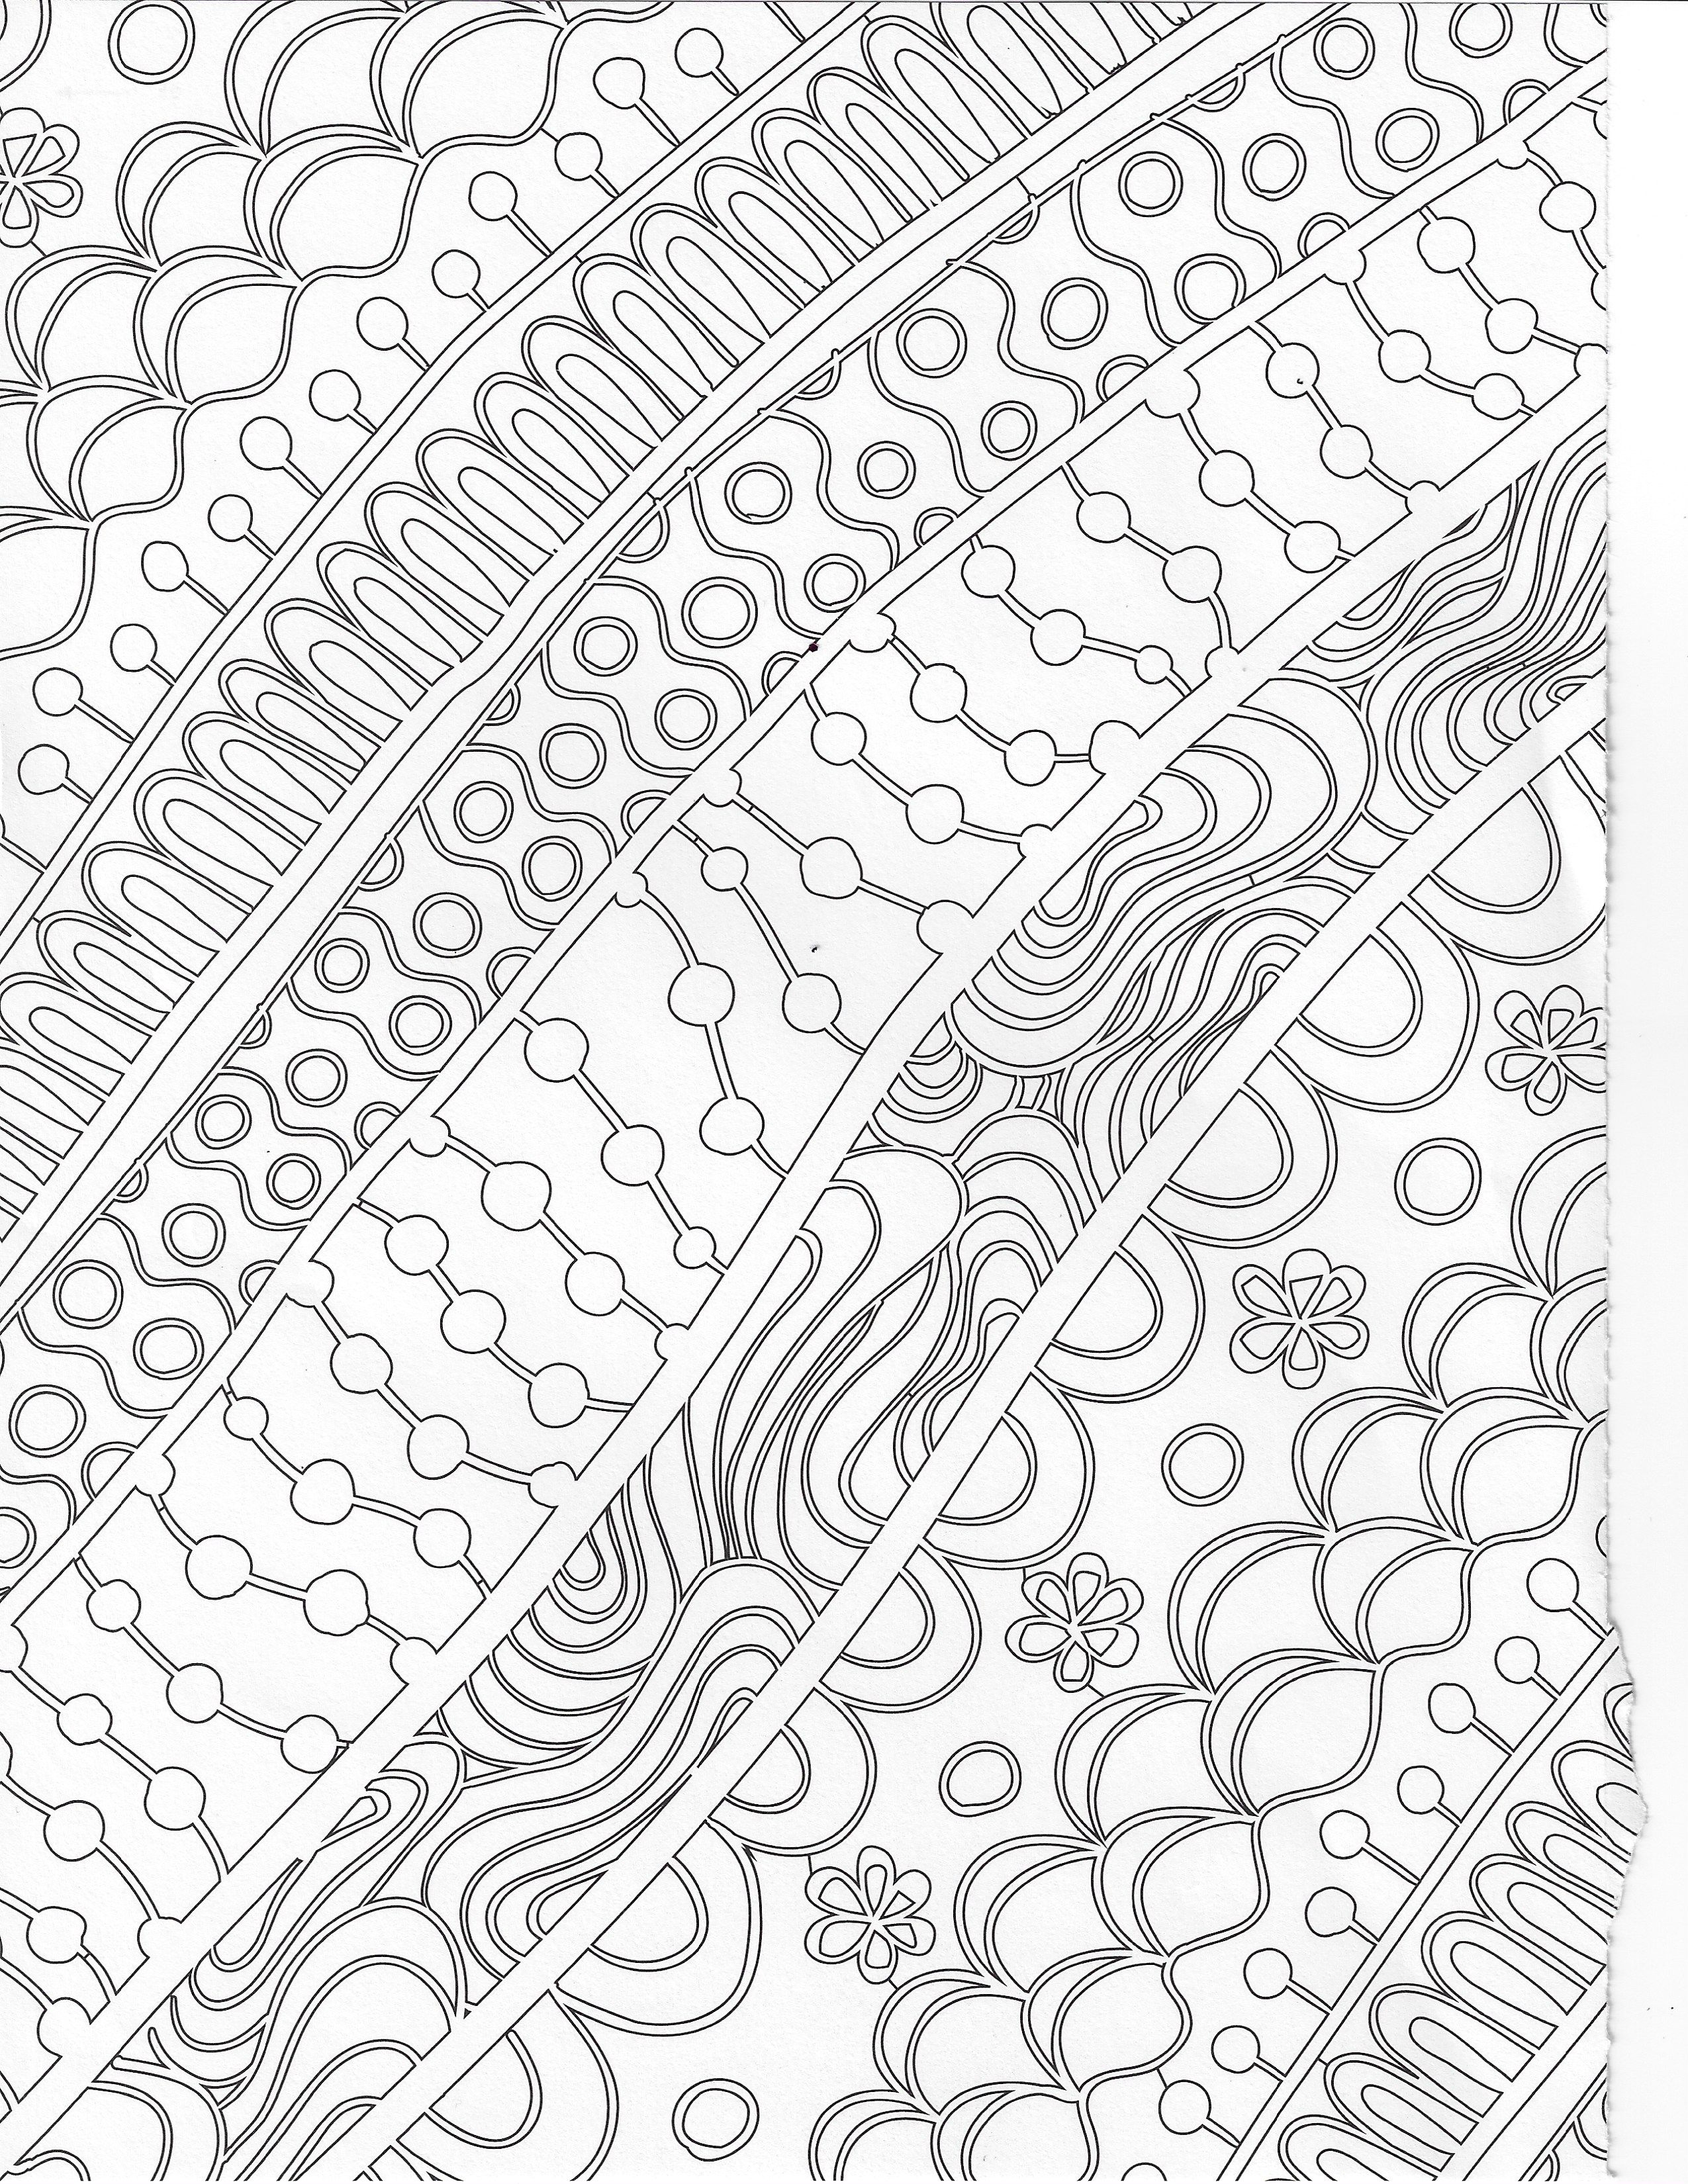 Pin By Lala Dewitt On Sept 2019 Coloring Zentangle Patterns Coloring Pages Colouring Pages